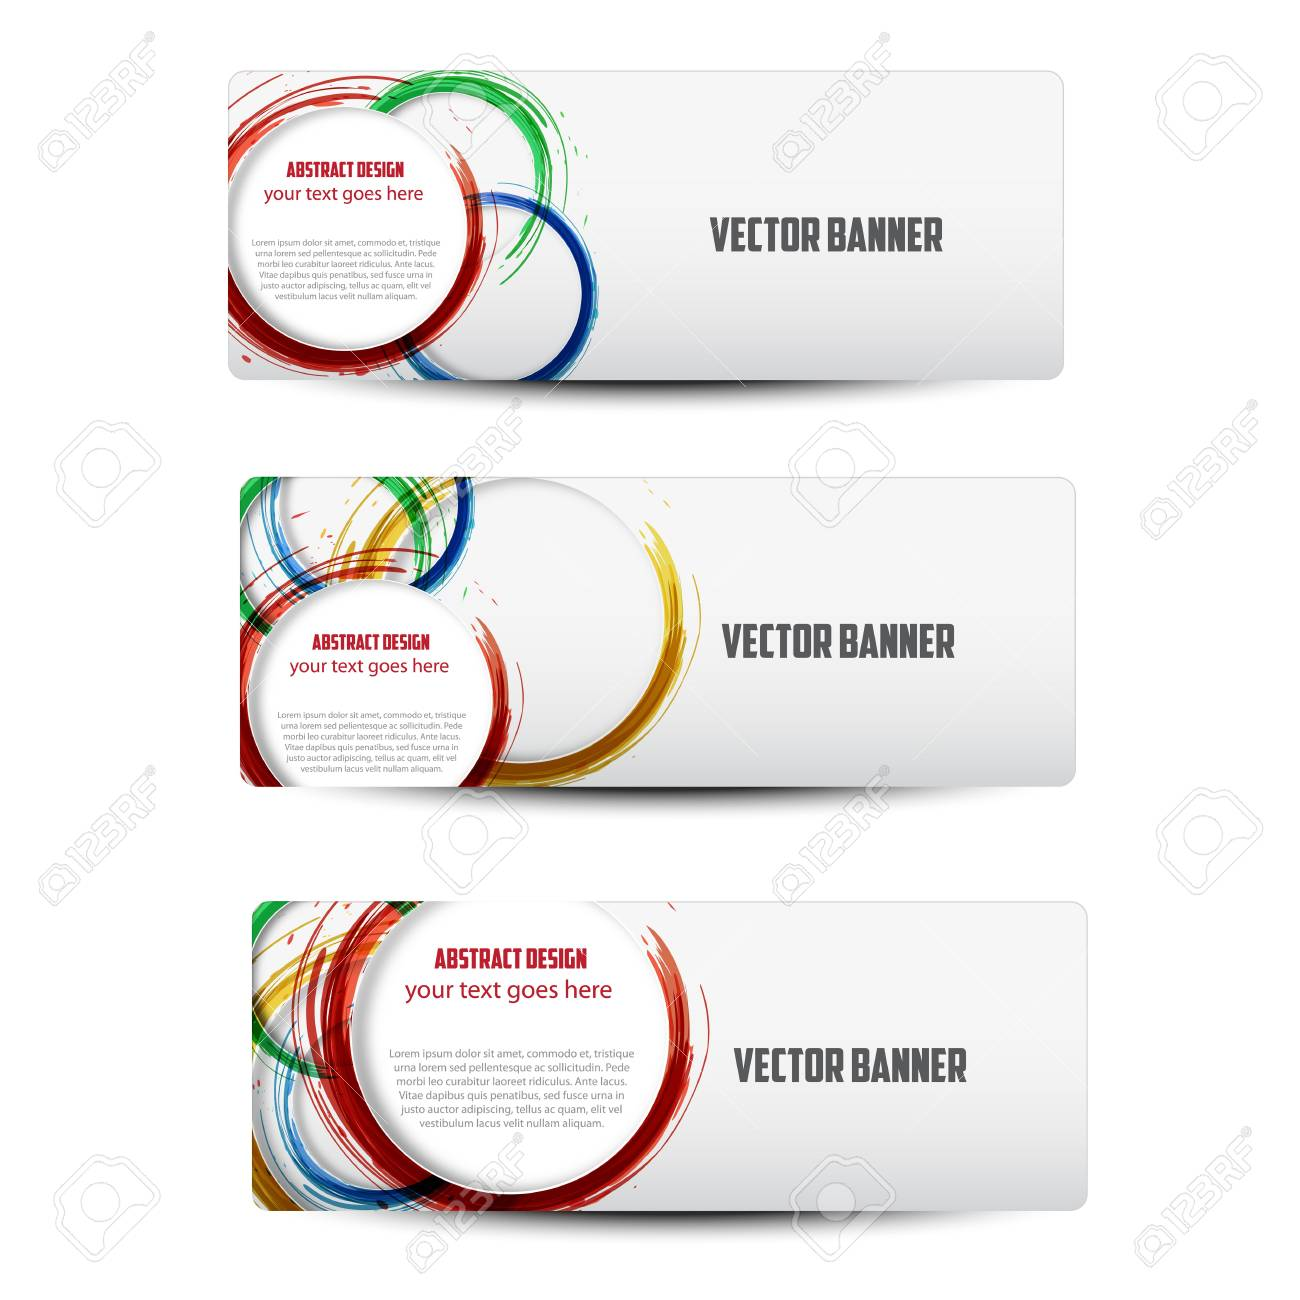 Set of  Design Elements for Web or Blog Templates Stock Vector - 14476367